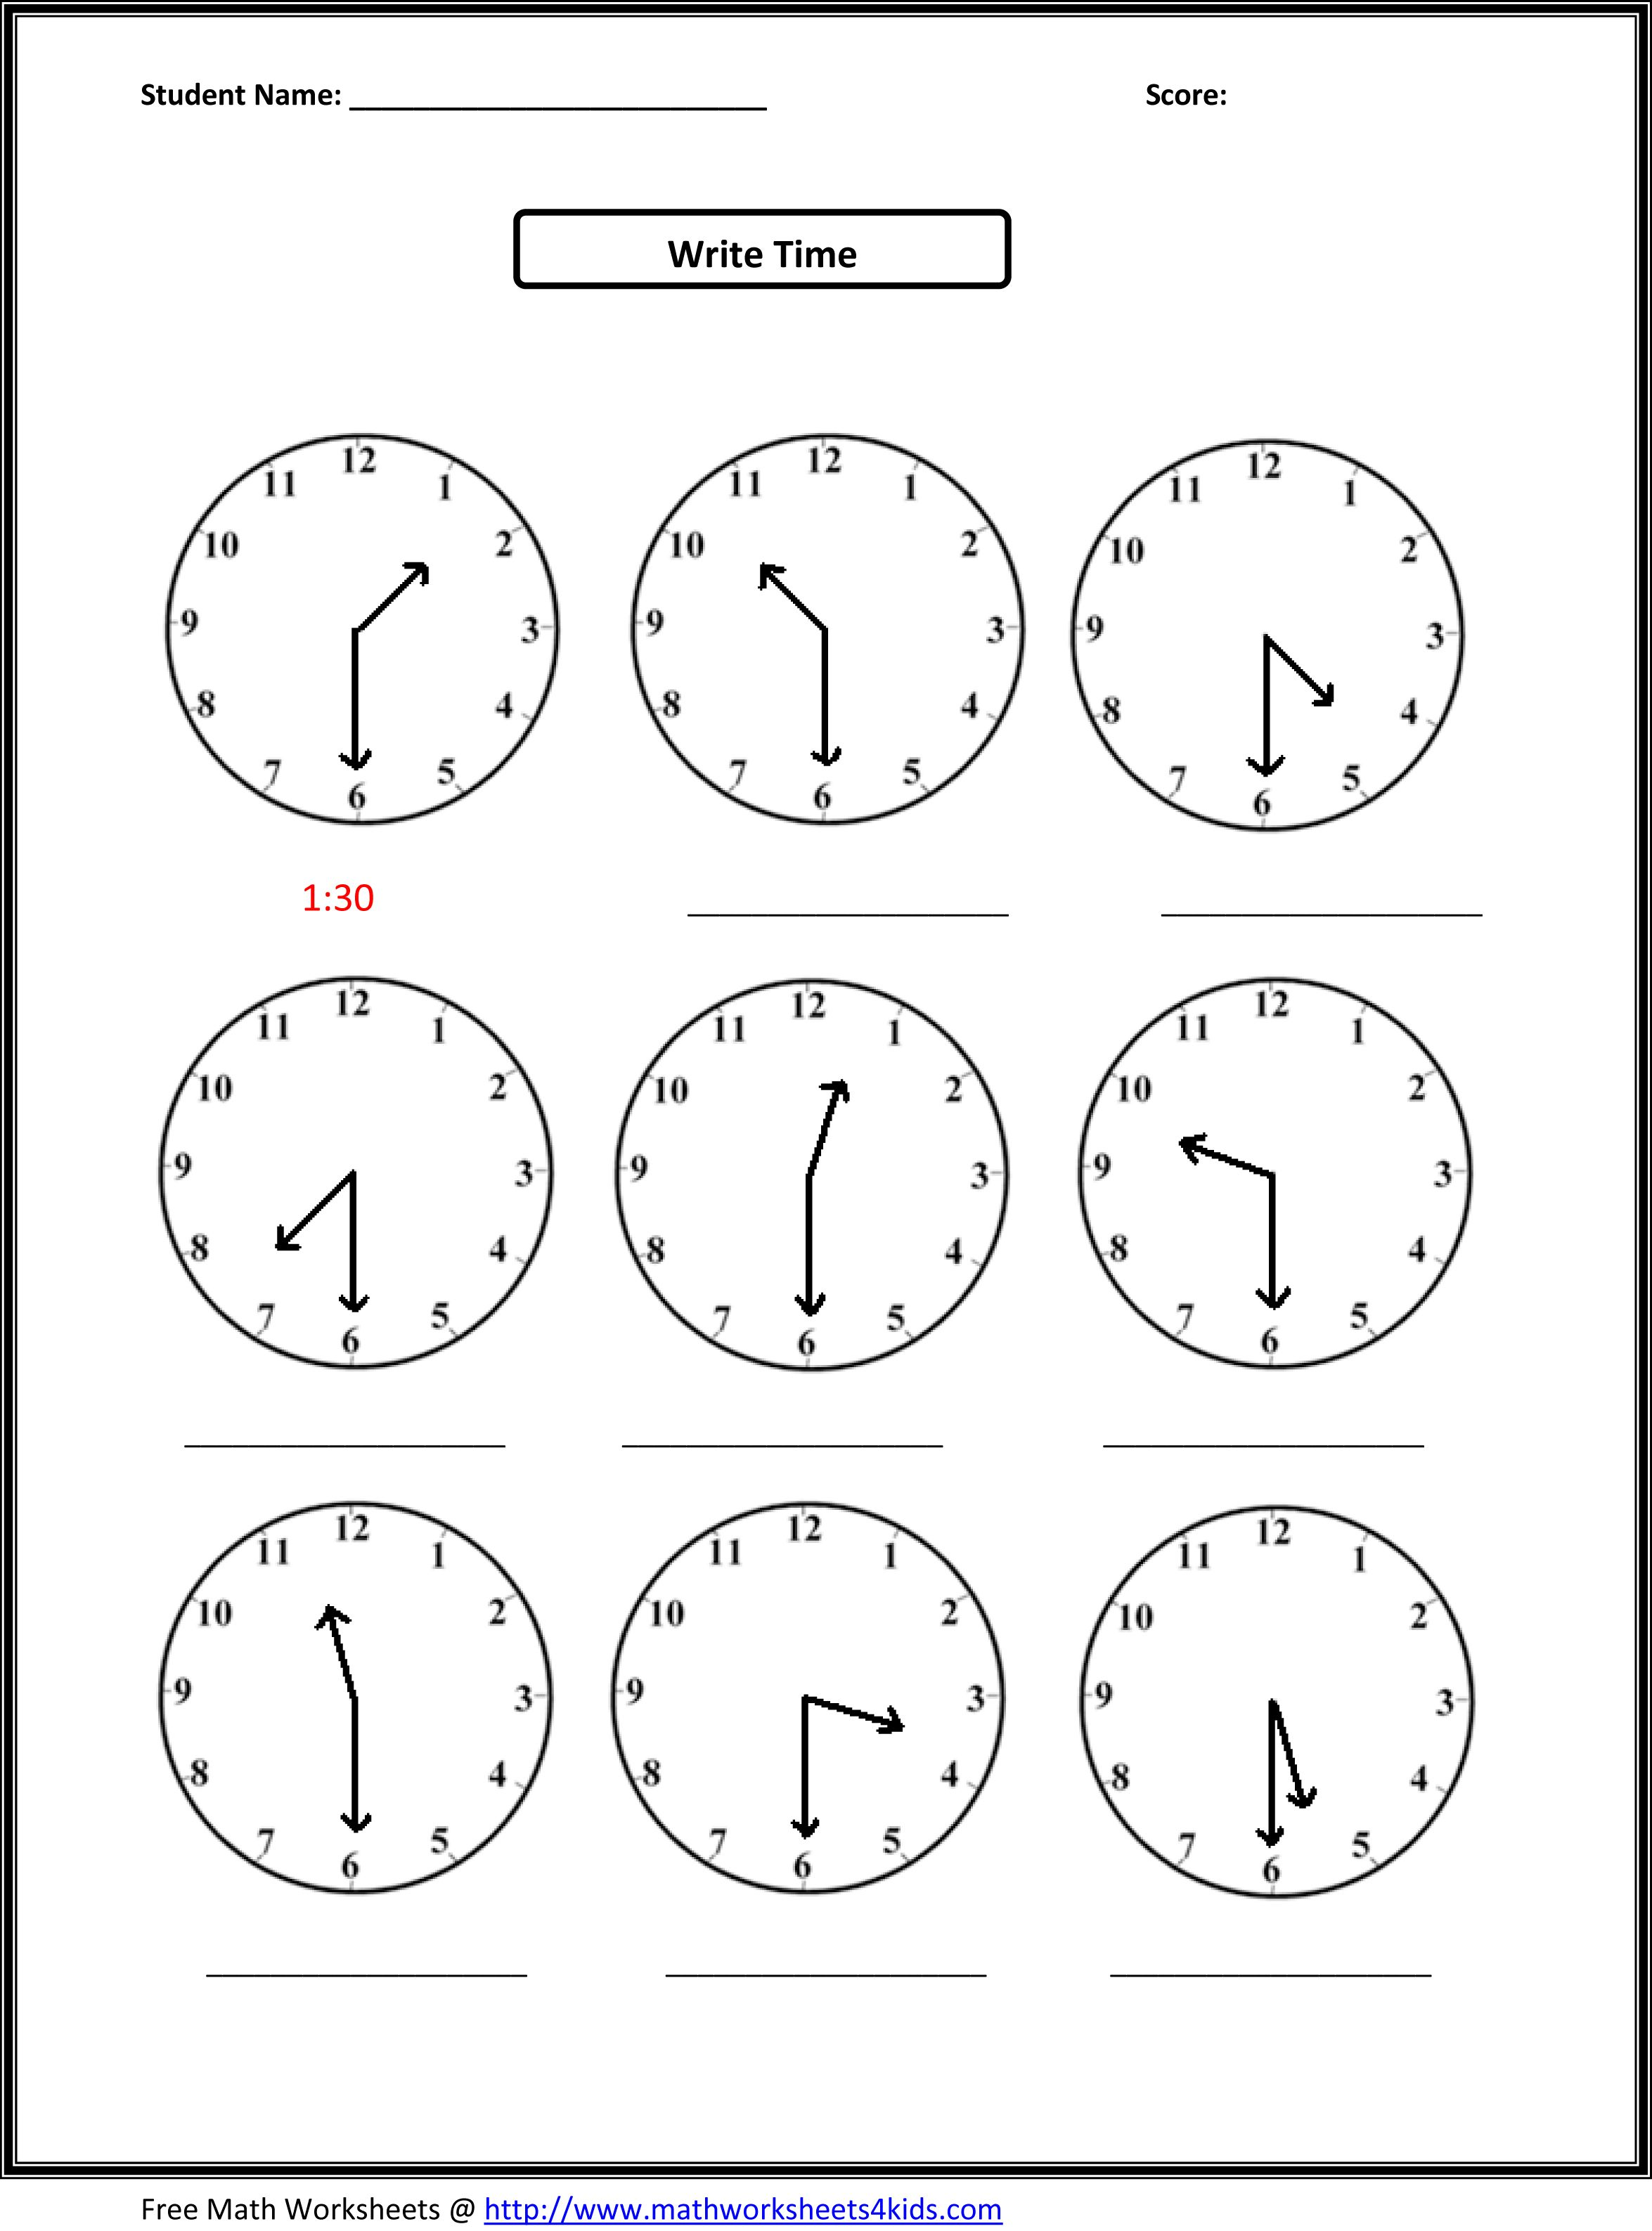 Proatmealus  Seductive Worksheet On Time For Grade   Reocurent With Lovely Free Printable Telling Time Worksheets Nd Grade  Reocurent With Amazing Writing Worksheets St Grade Also Fourth Grade Spelling Worksheets In Addition Hindi Worksheets For Grade  And Converting Decimals To Percents Worksheets As Well As  Grade Multiplication Worksheets Additionally Fourth Grade Math Worksheet From Reocurentcom With Proatmealus  Lovely Worksheet On Time For Grade   Reocurent With Amazing Free Printable Telling Time Worksheets Nd Grade  Reocurent And Seductive Writing Worksheets St Grade Also Fourth Grade Spelling Worksheets In Addition Hindi Worksheets For Grade  From Reocurentcom